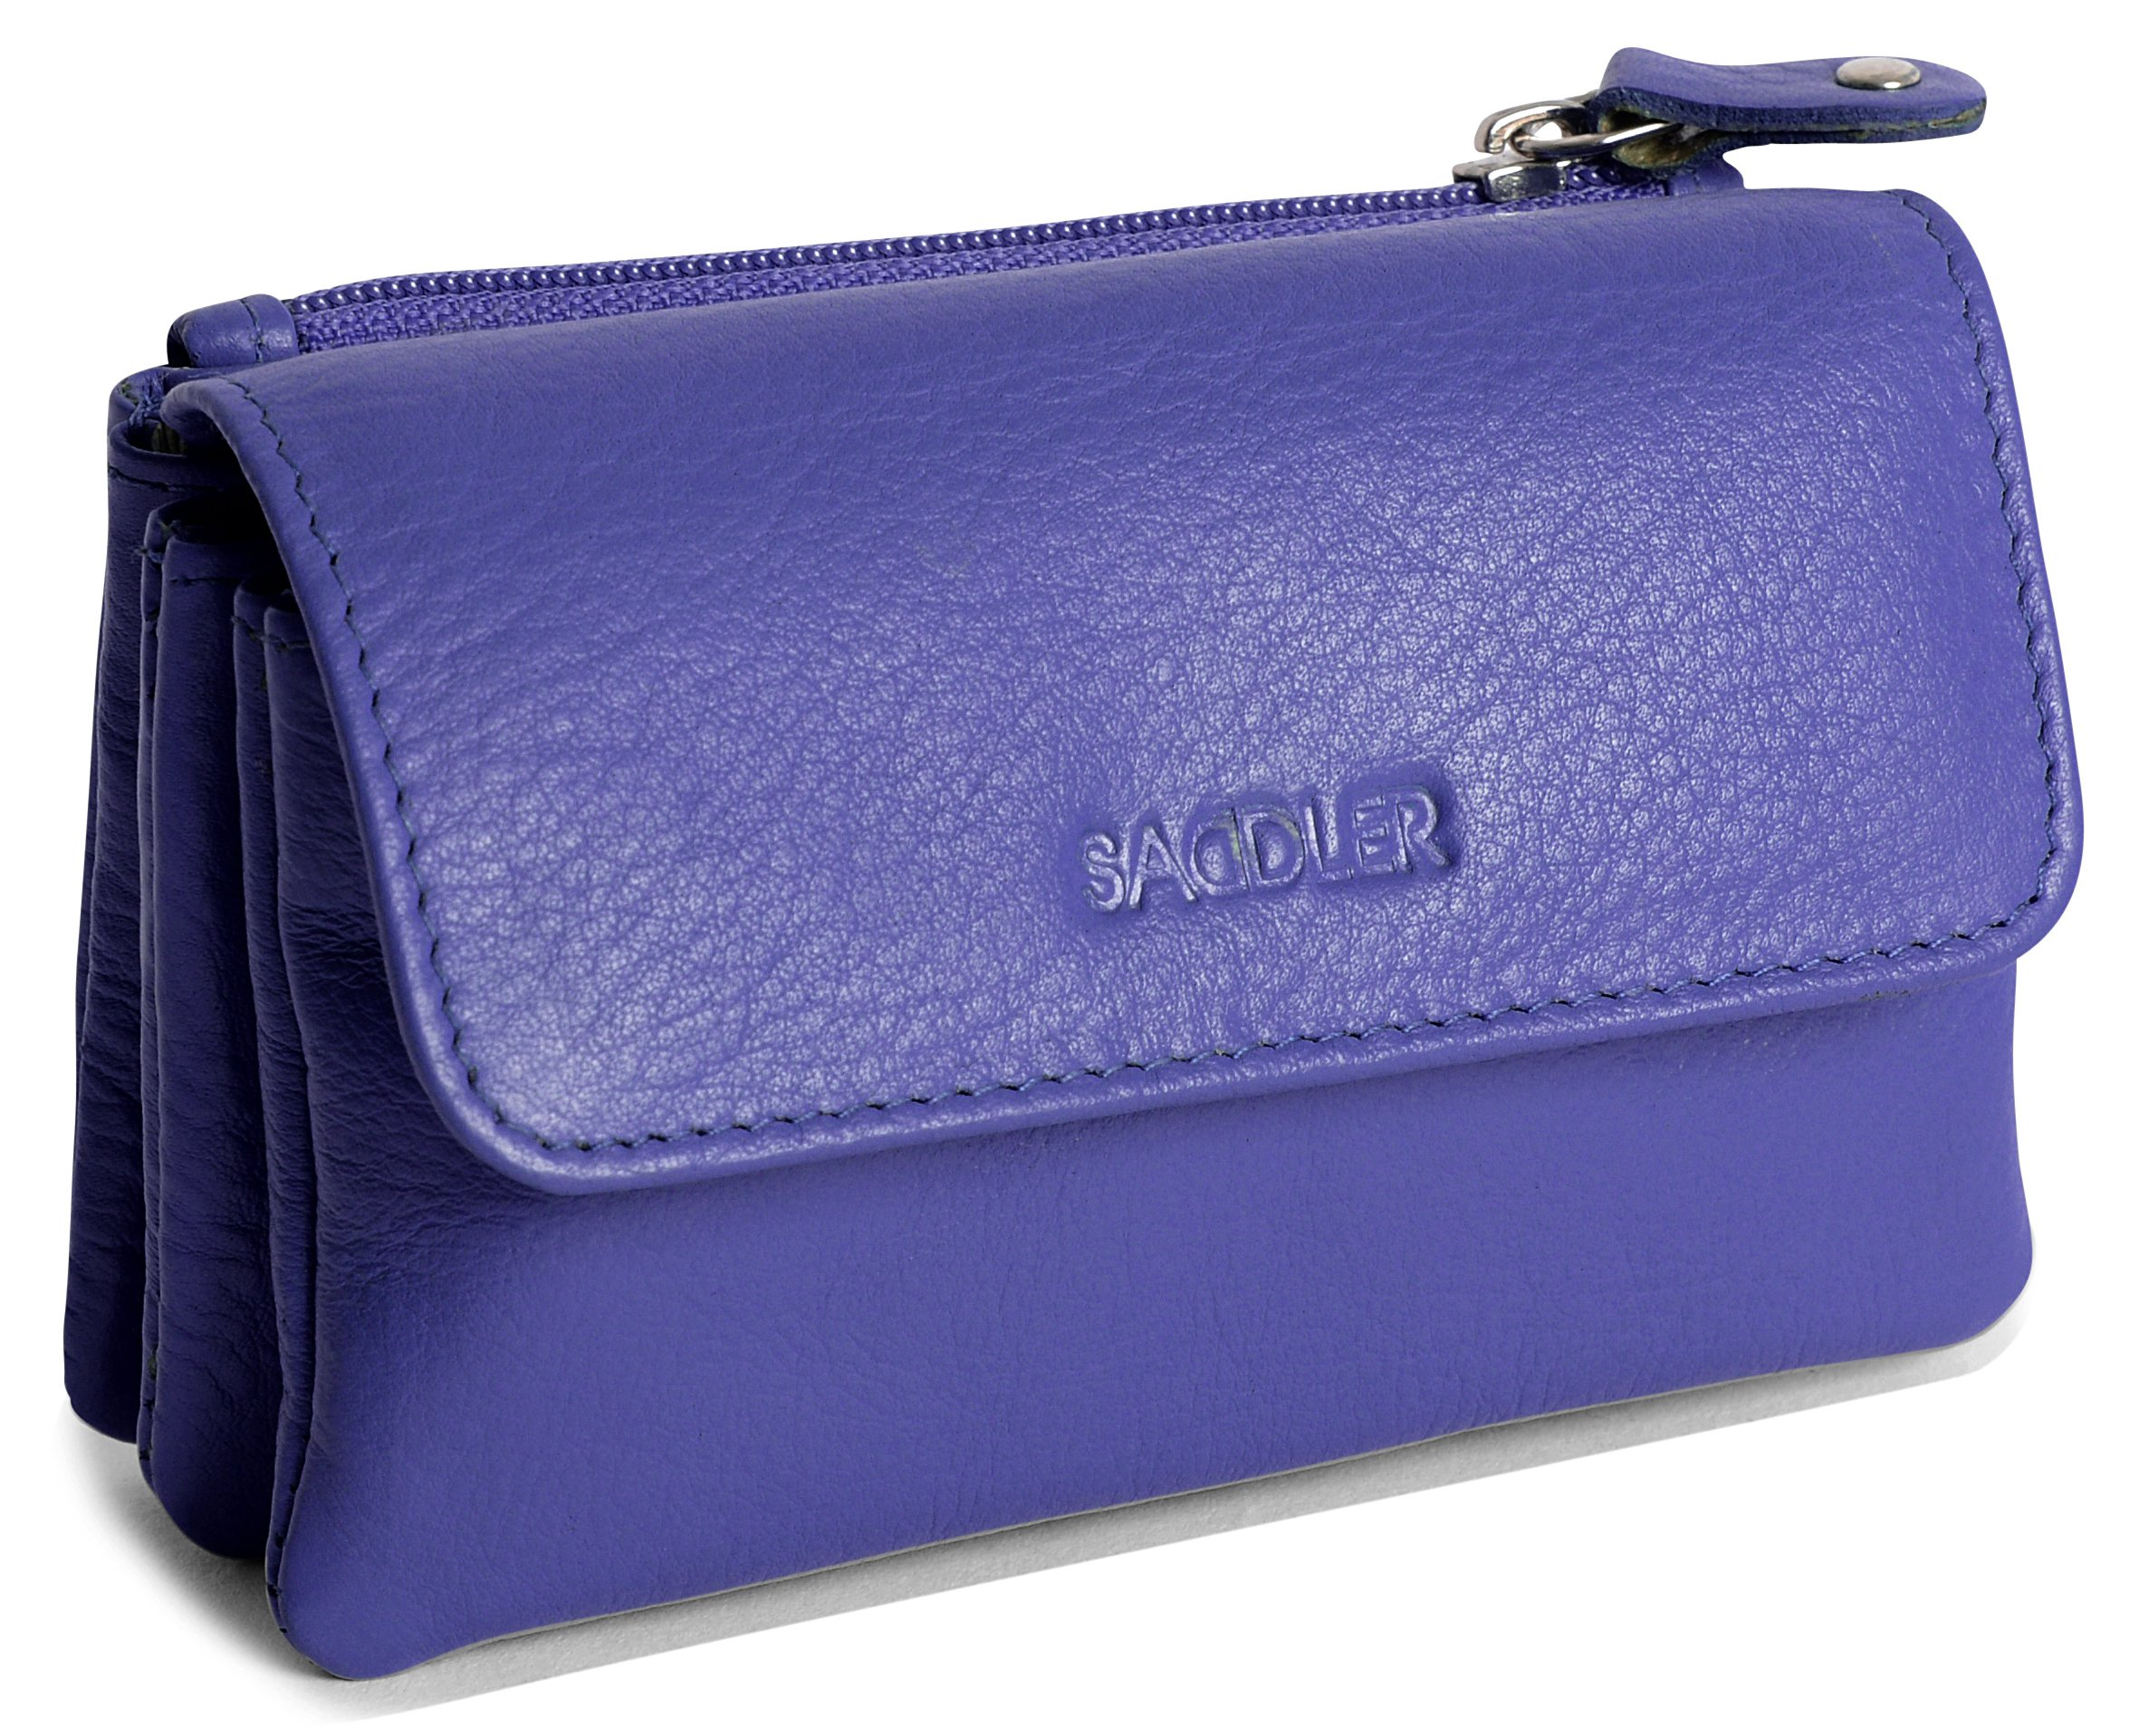 SADDLER Genuine Leather Womens Slim Mini Credit Card Ladies Wallet Change Coin Purse Pouch - Ultraviolet